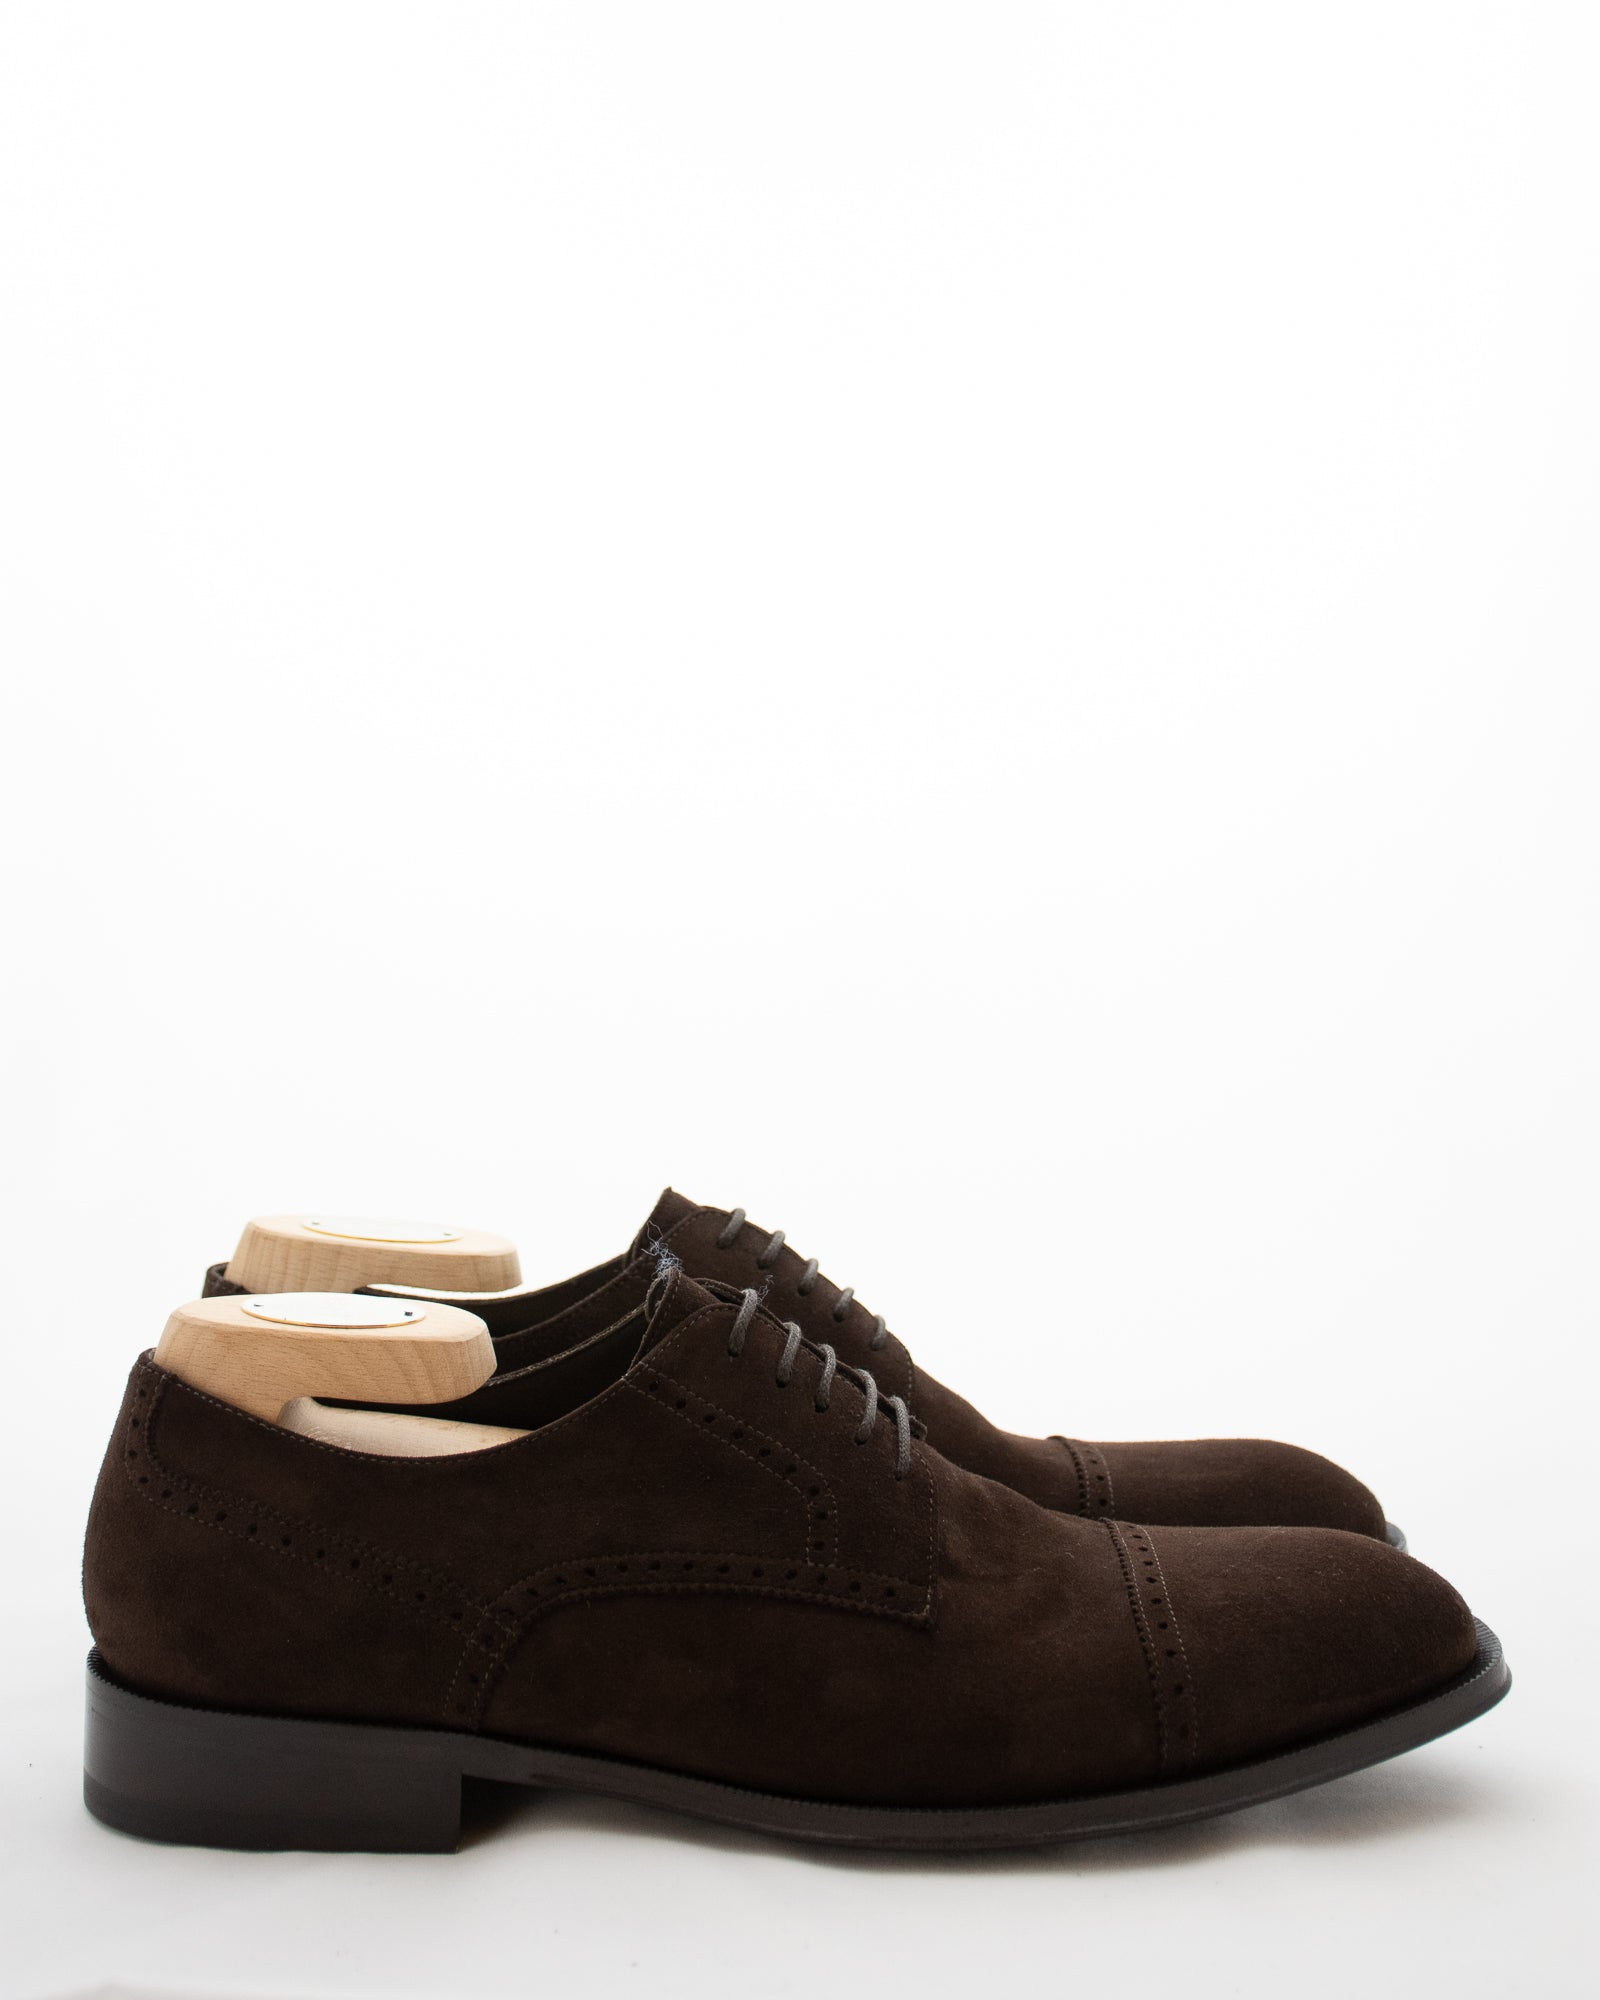 CORNELIANI Suede Brogue Lace Up